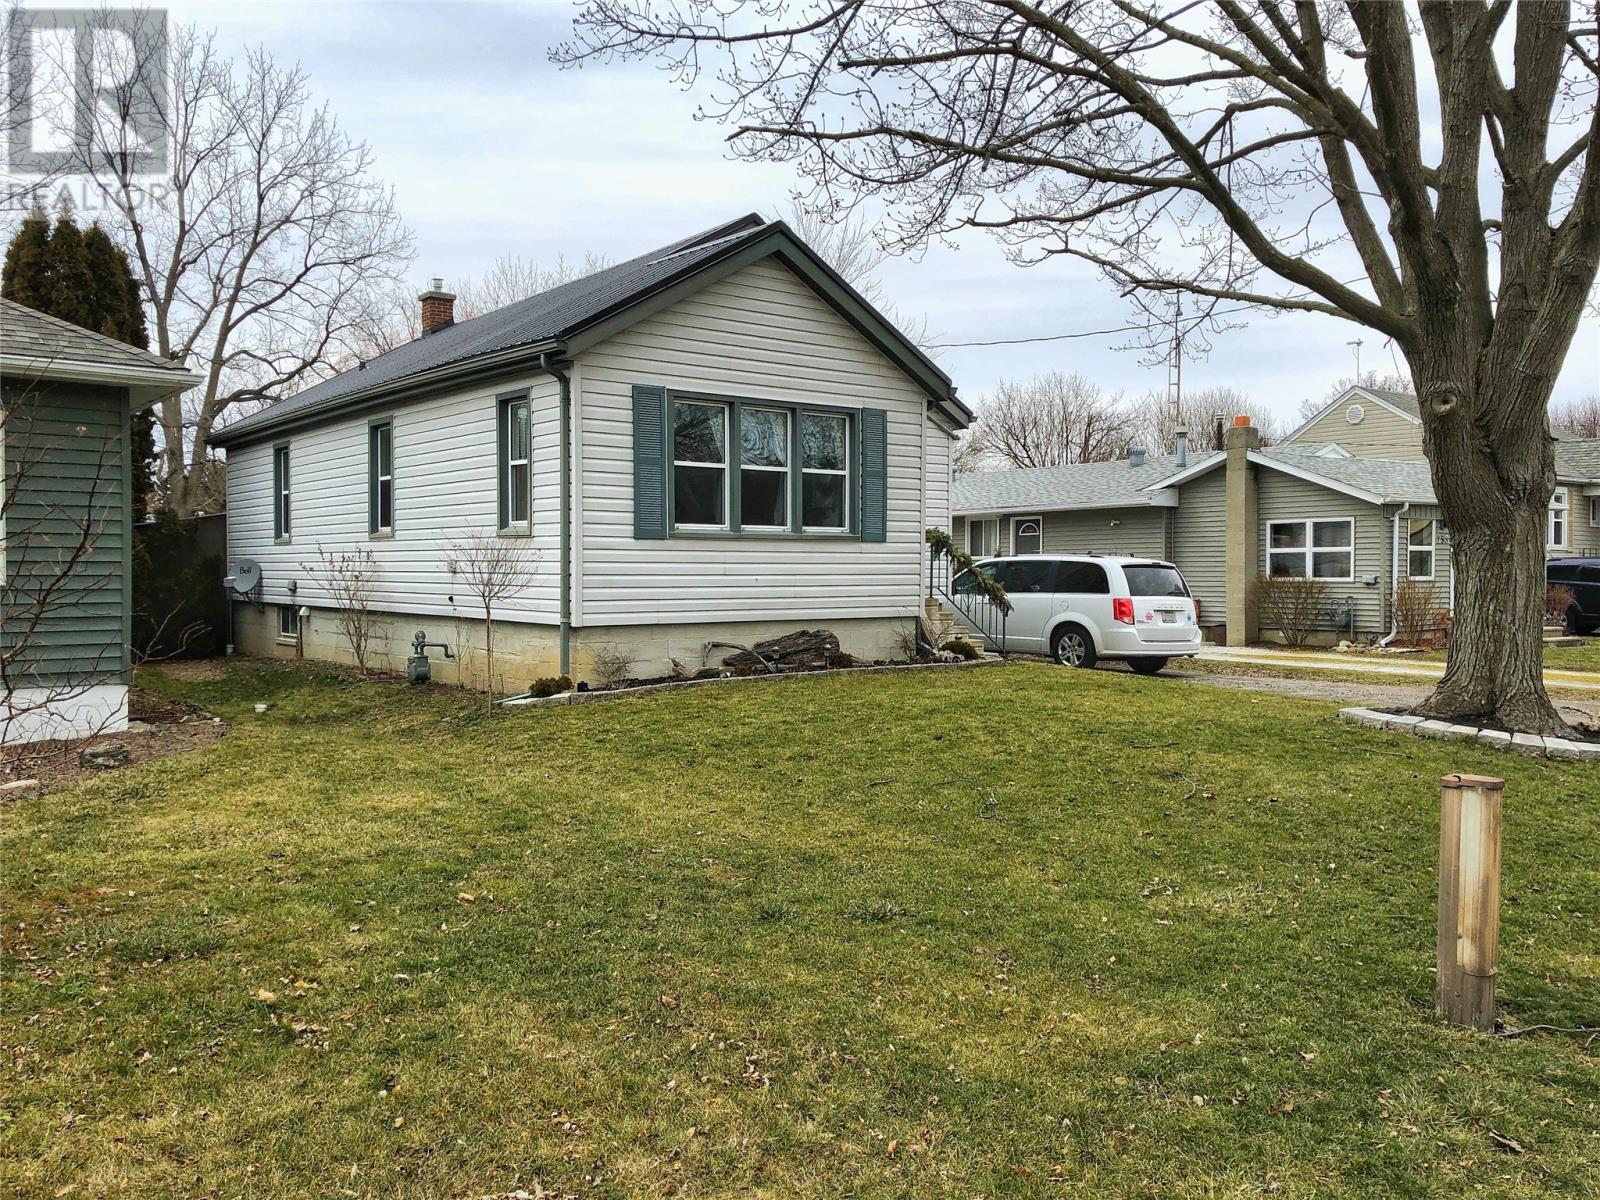 Removed: 251 Forest Street, Chatham, ON - Removed on 2020-03-11 06:45:16